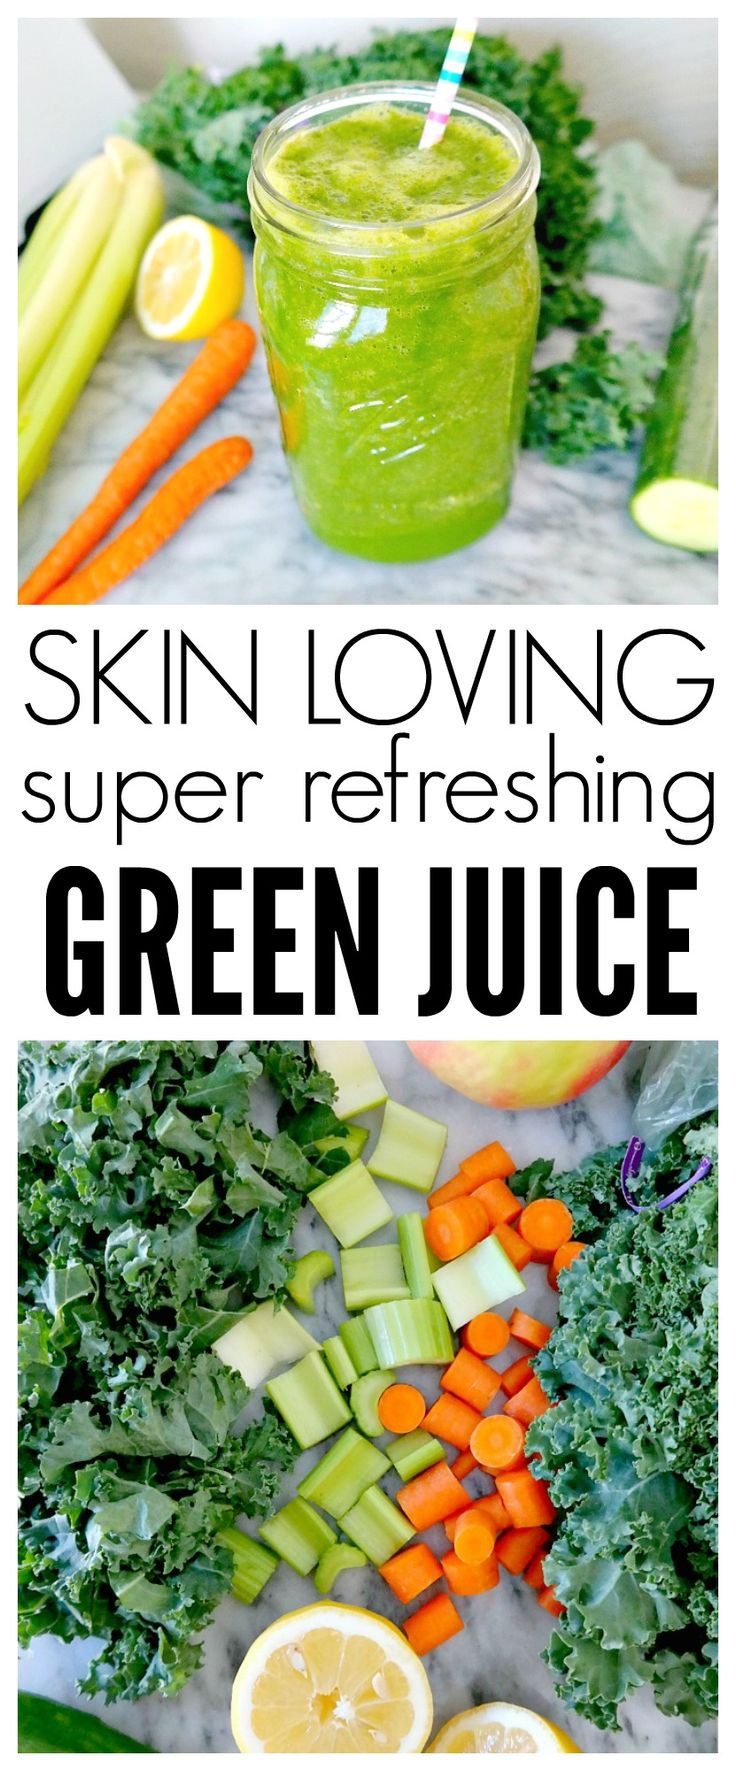 Skin Loving, Super Refreshing Green Juice Recipe. Vegan and Plant Based. Hydrating, energizing and packed with nutrients like turmeric for beautiful skin. Perfect for green juice beginners or green lovers alike! From The Glowing Fridge. #vegan #green #juice